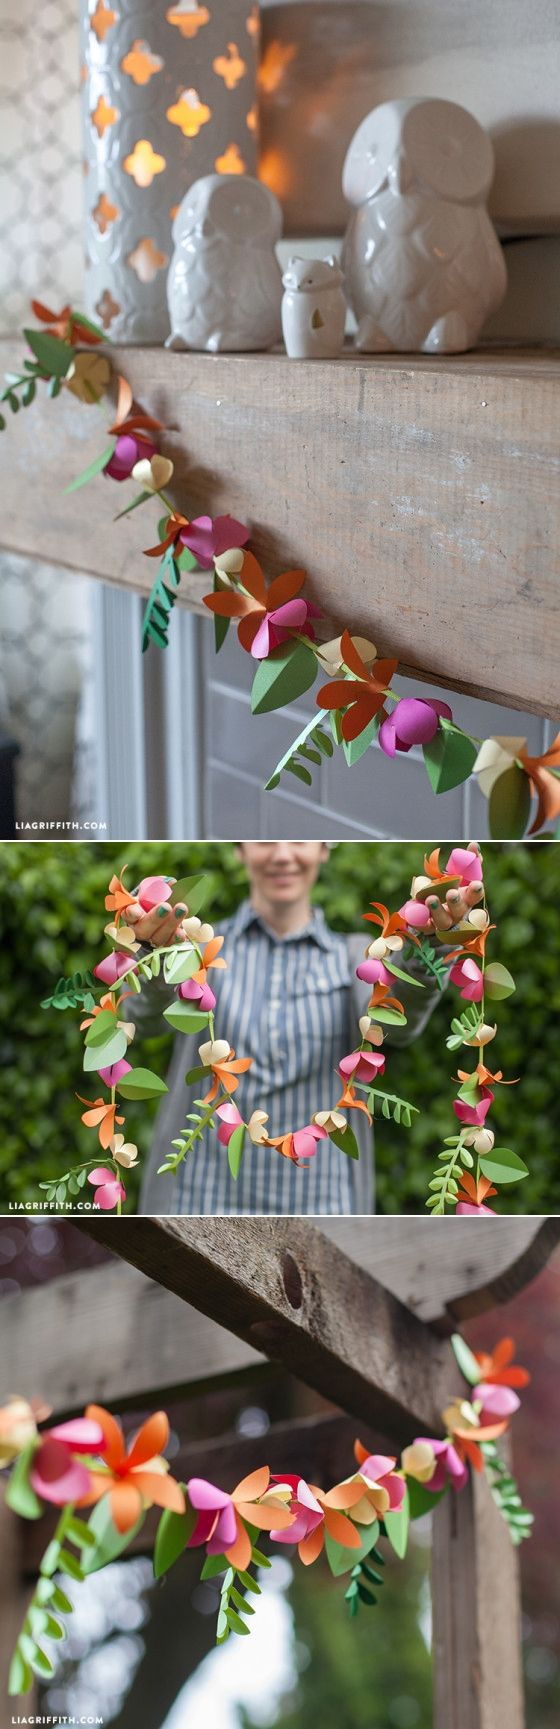 Garlands  Flower Spring Paper Paper air Flowers max Flower Paper and   Garlands Garland coliseum racer